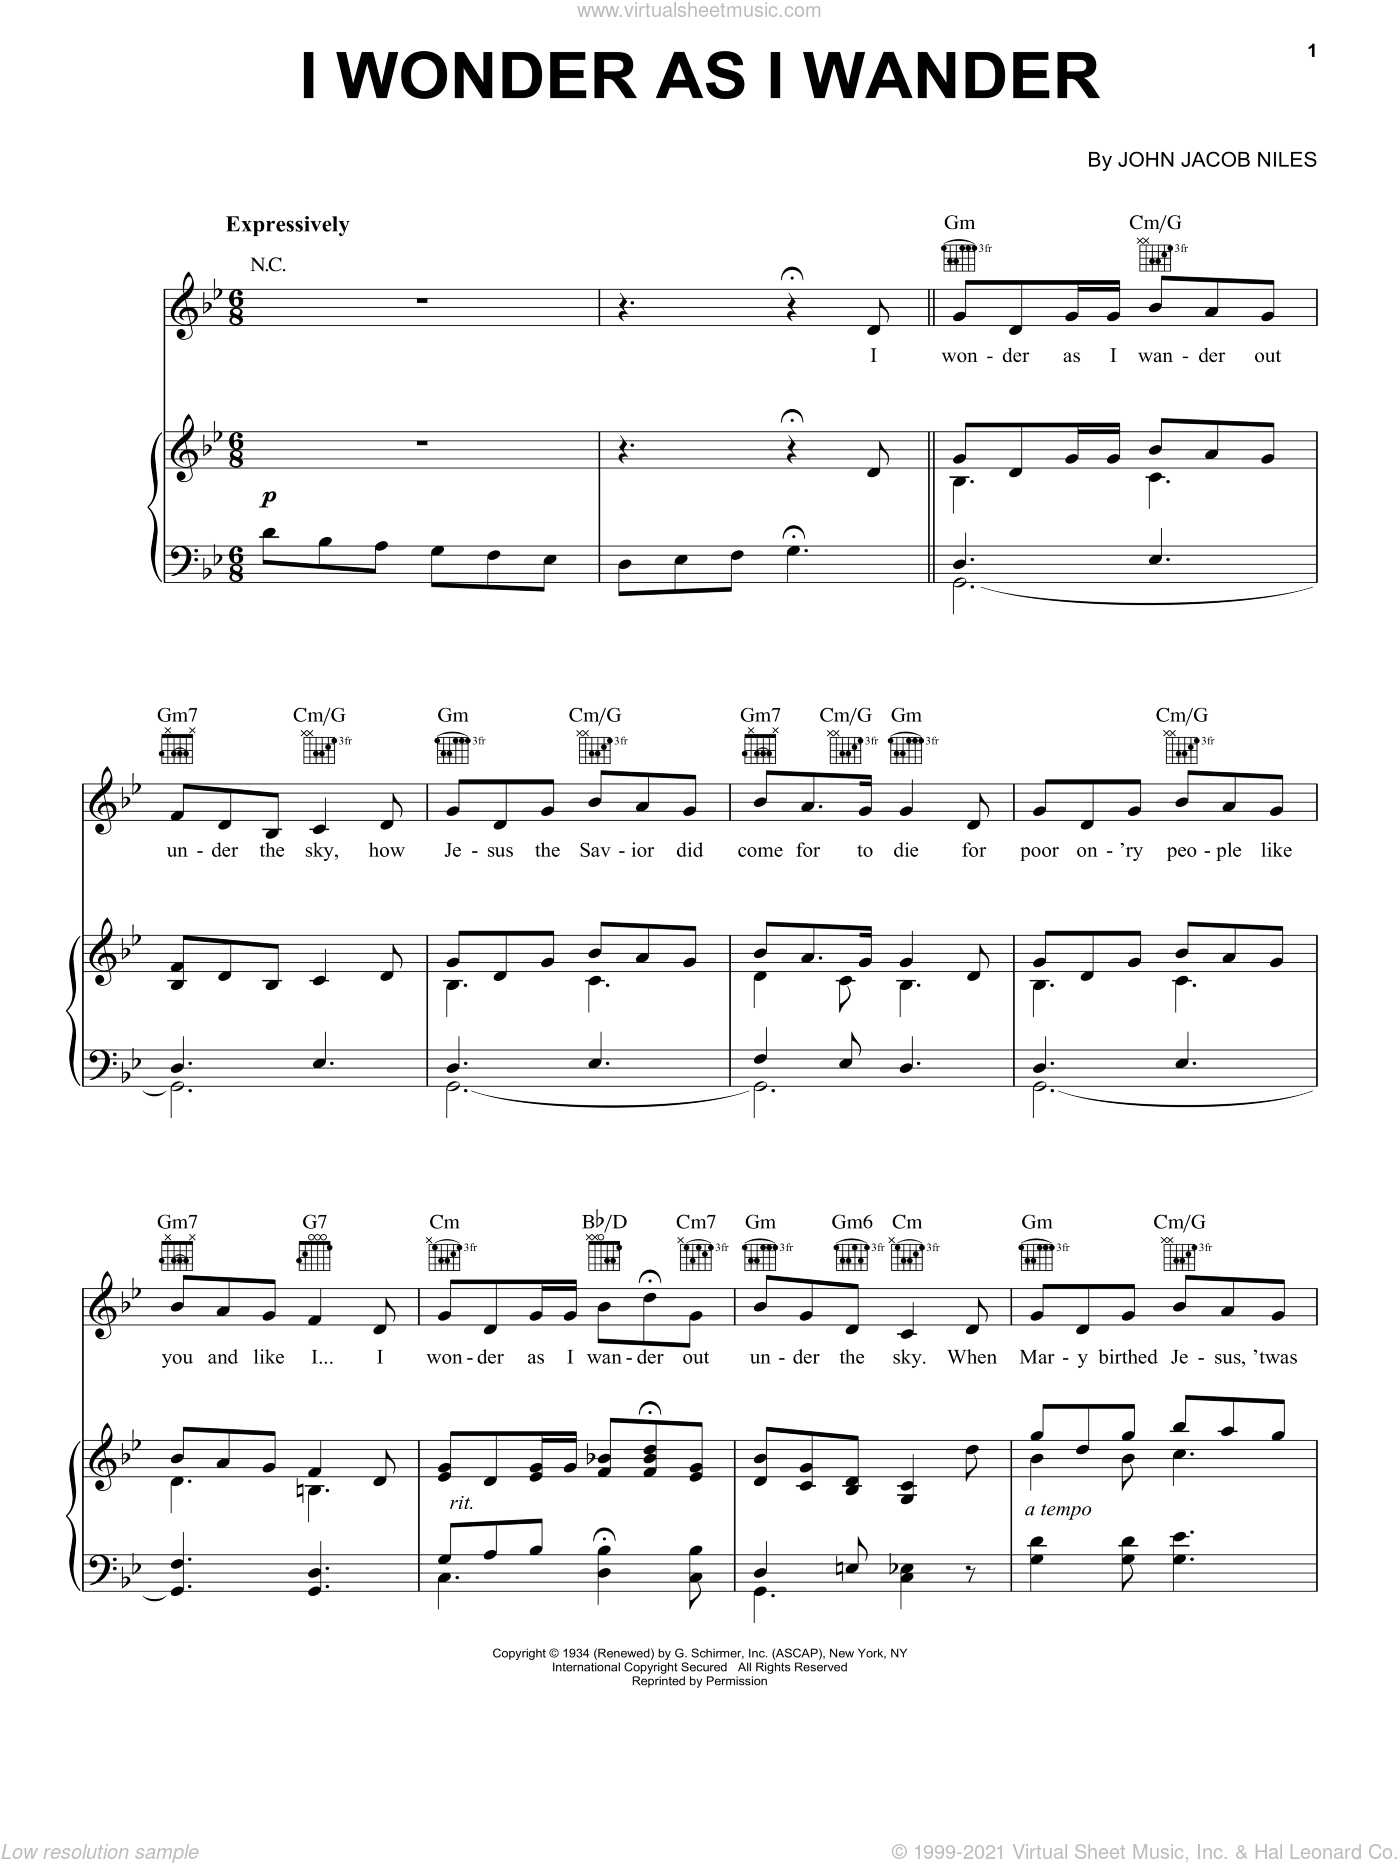 I Wonder As I Wander sheet music for voice, piano or guitar by John Jacob Niles, intermediate skill level